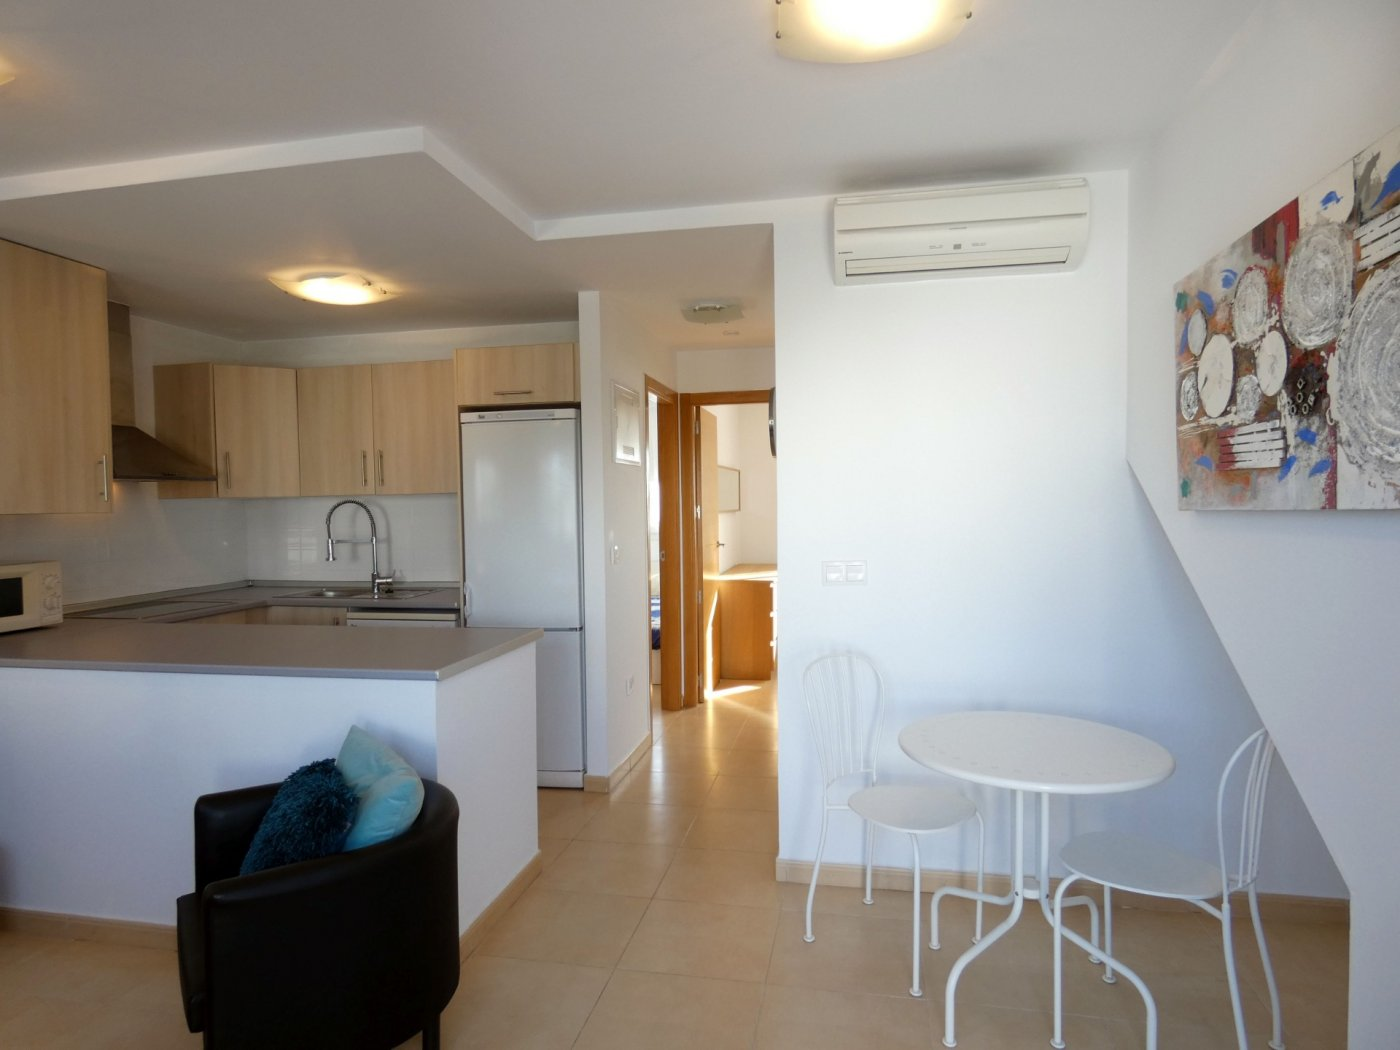 Gallery Image 4 of Sunny 2 Bed Apartment on a Cosy Corner Plot with Stunning Lemon Grove Views and Communal Pool